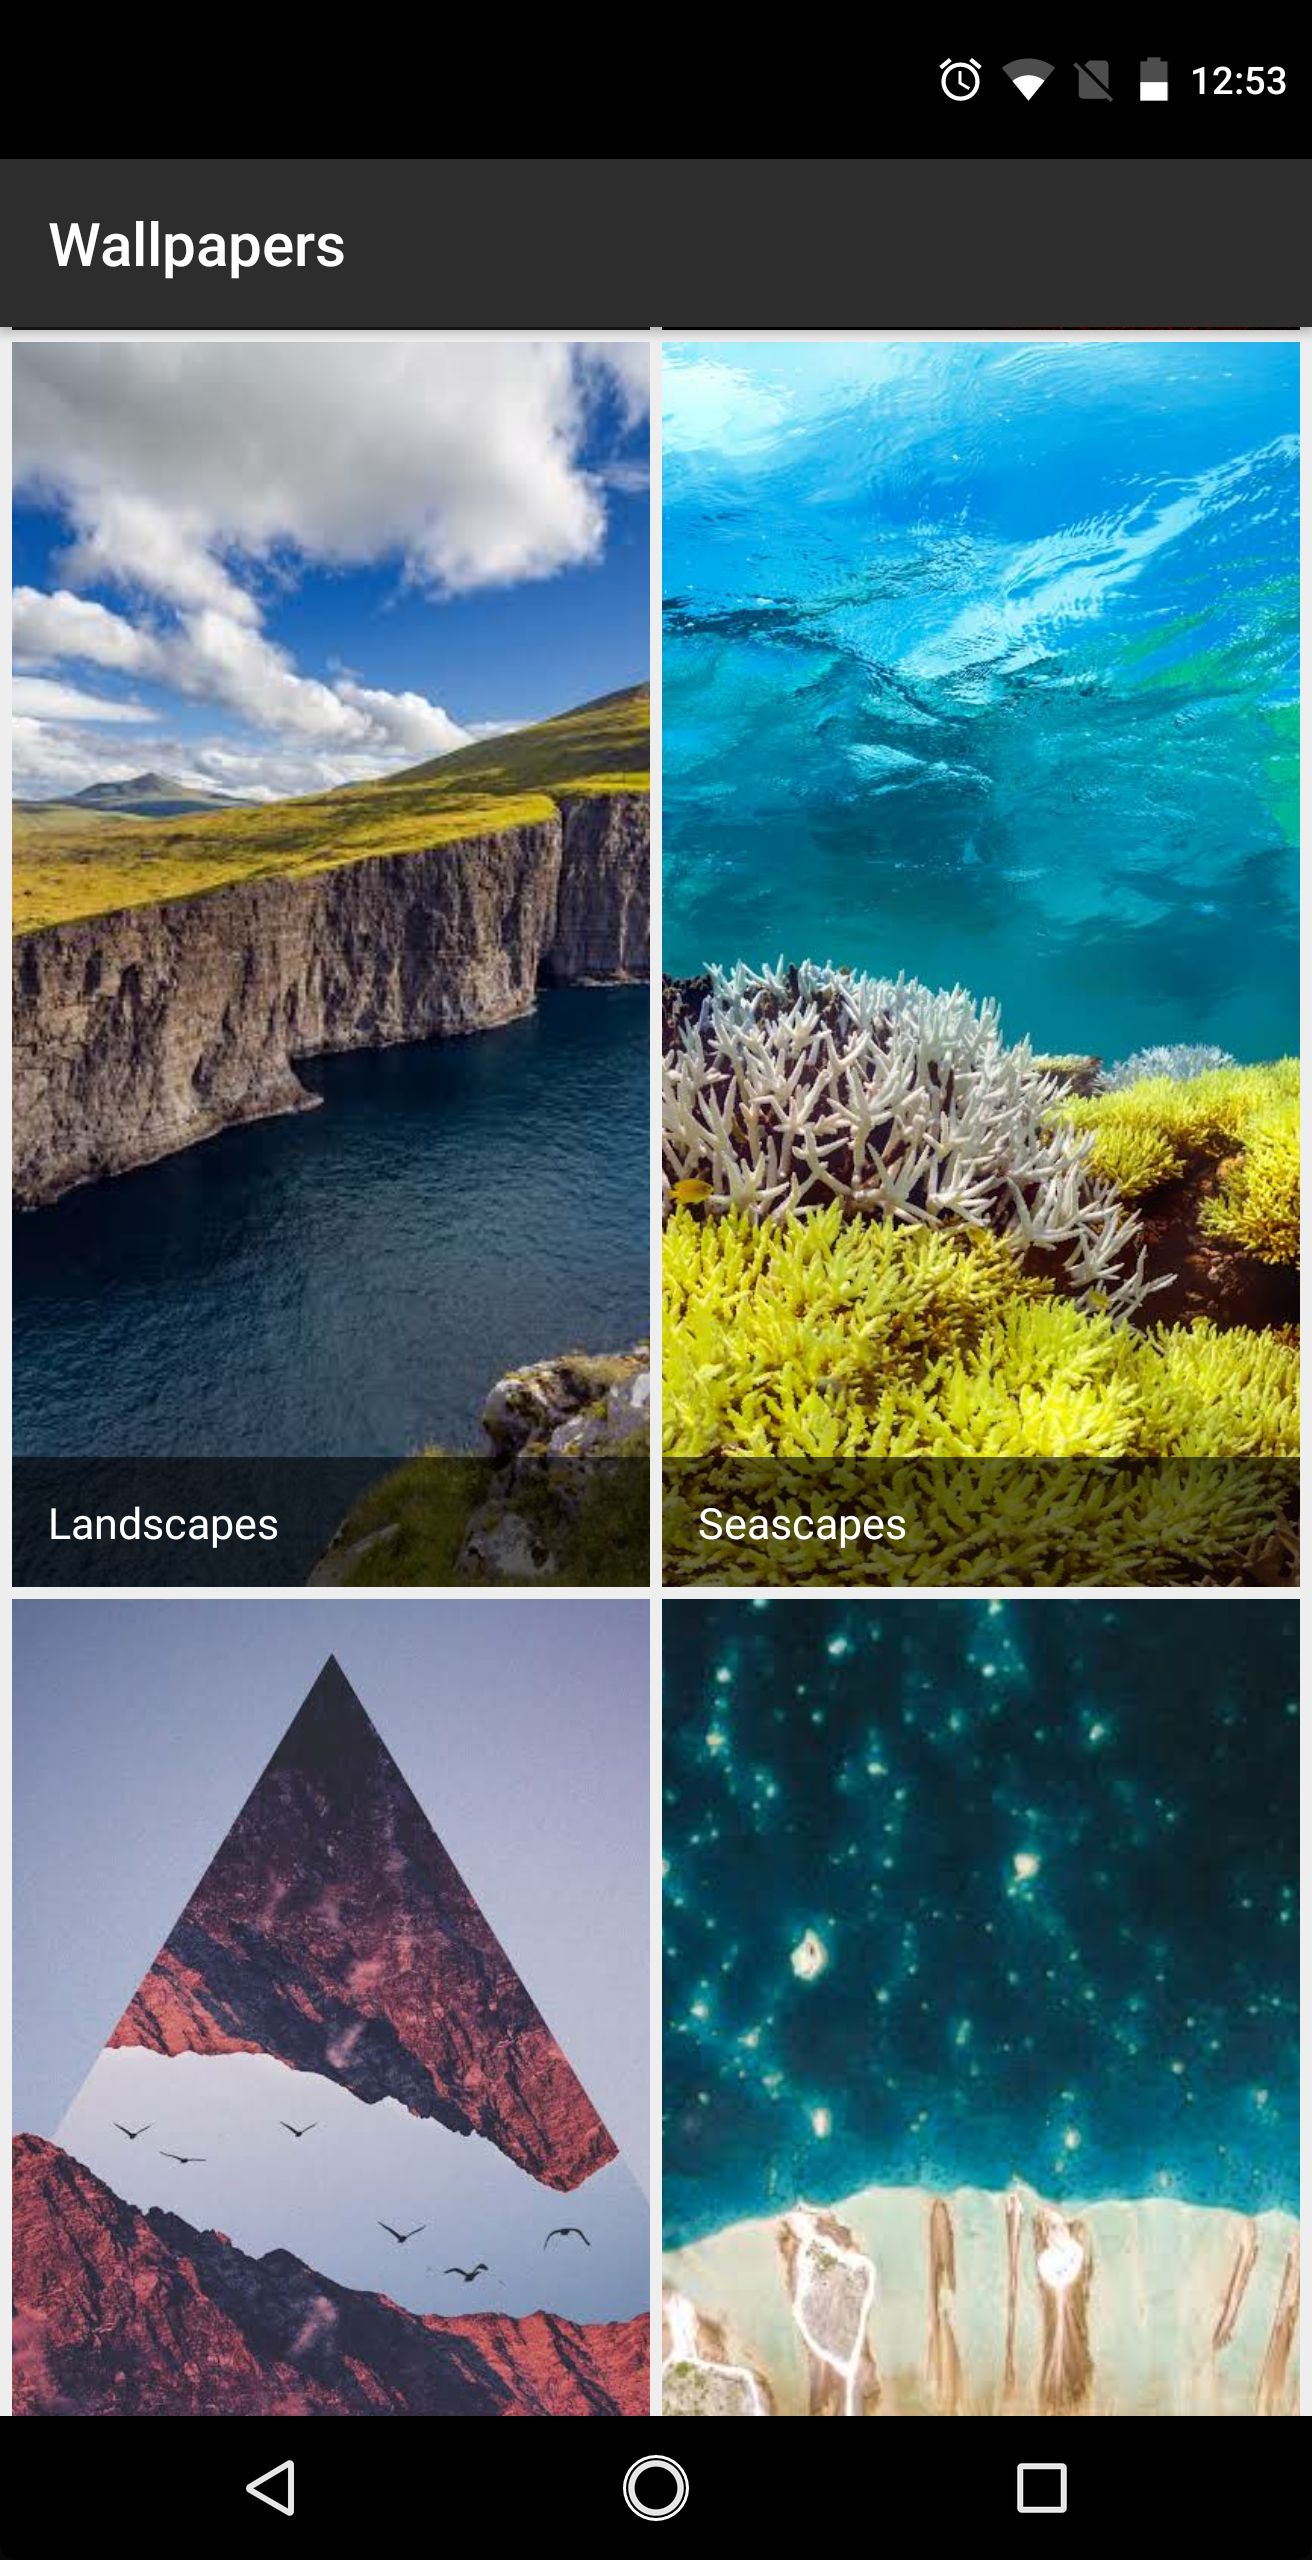 All you need to do is download the app from the Google Play Store, open it, and you'll find nestled in between Landscapes and Art for beautiful wallpapers ...